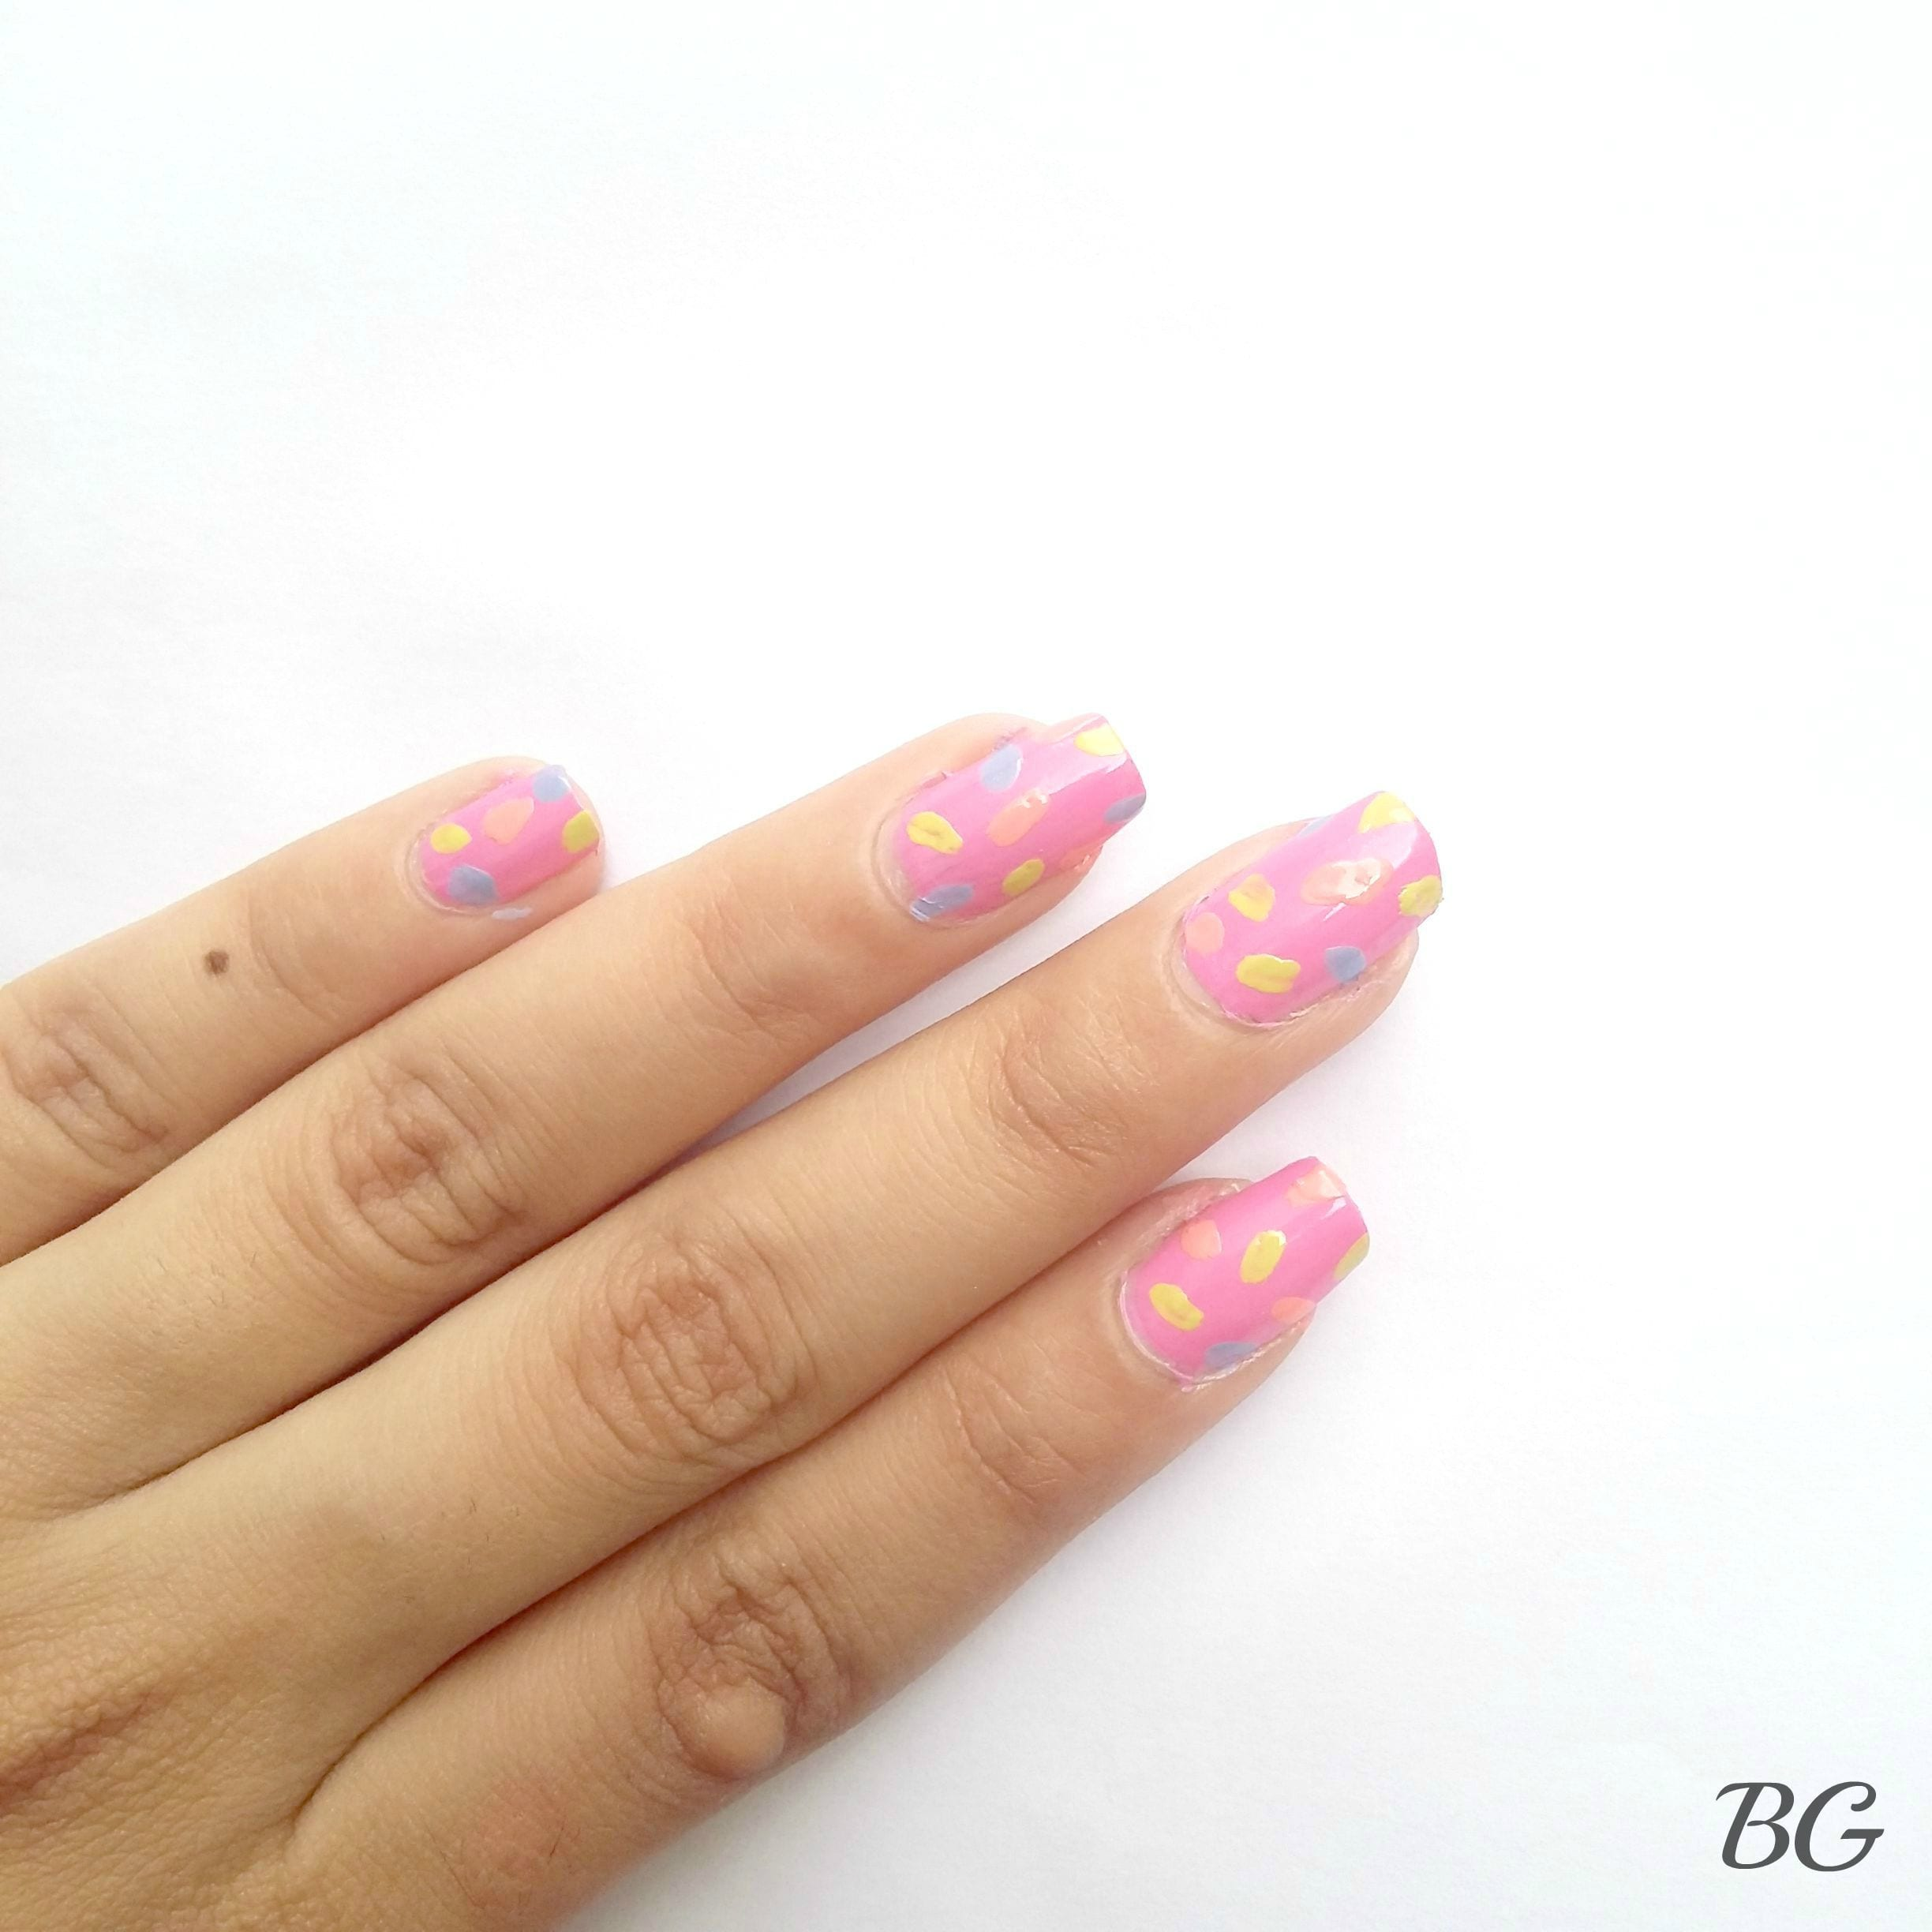 Nail-Art-Tutorial-Summer-Confetti4 Quick DIY Summer Nail Art Tutorial - Confetti Nail Design